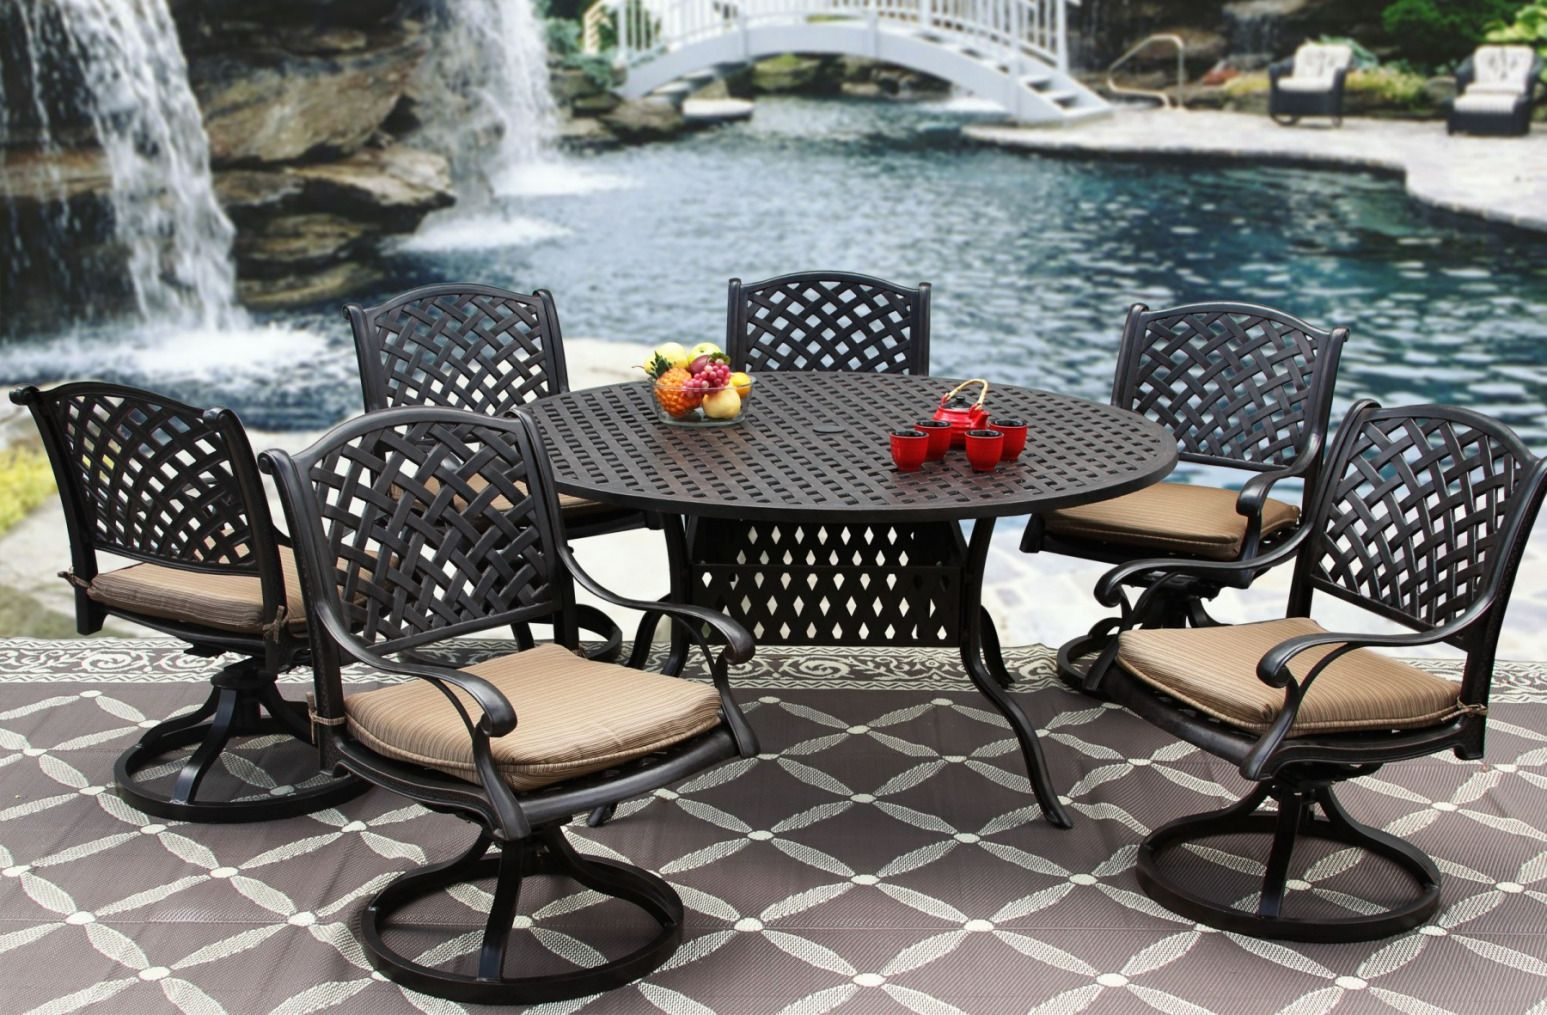 100 60 inch round patio table sets best paint for wood furniture rh pinterest com Used 60 Inch Round Tables Used 60 Inch Round Tables